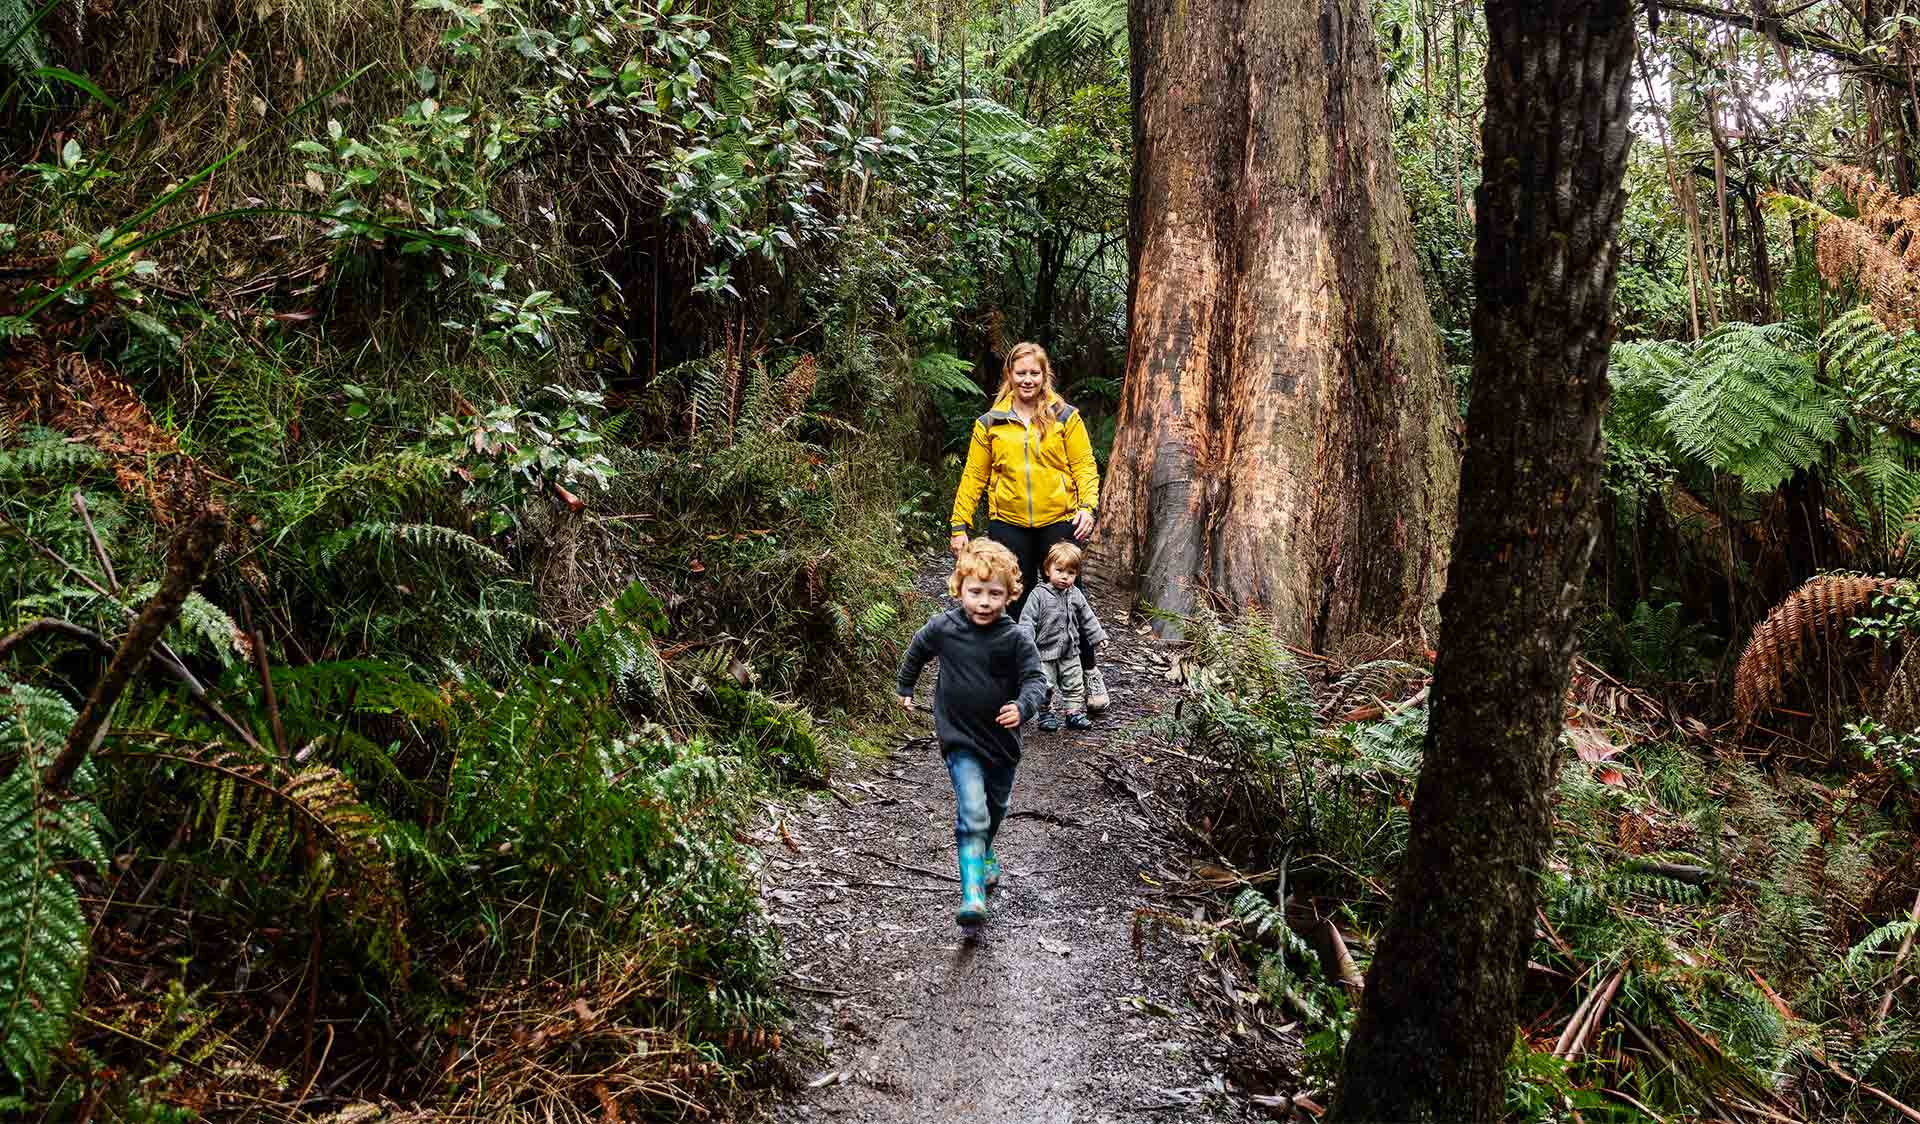 A three year old boy leads his mum and younger brother through the forest near Grants Picnic Ground.